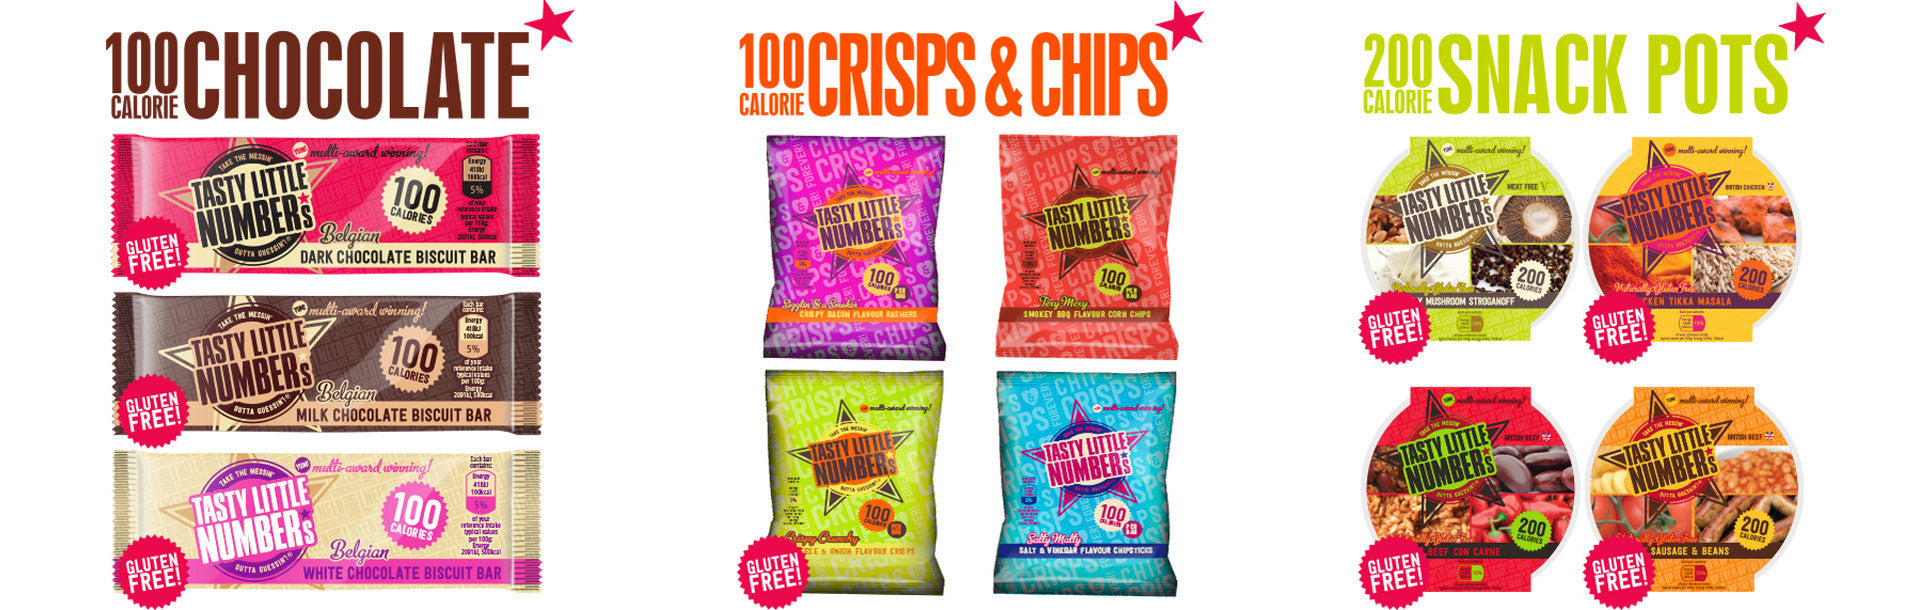 100 CALORIE CHOCOLATE BARS! 100 CALORE CRISPS & CHIPS! 200 CALORIE SNACK POTS!